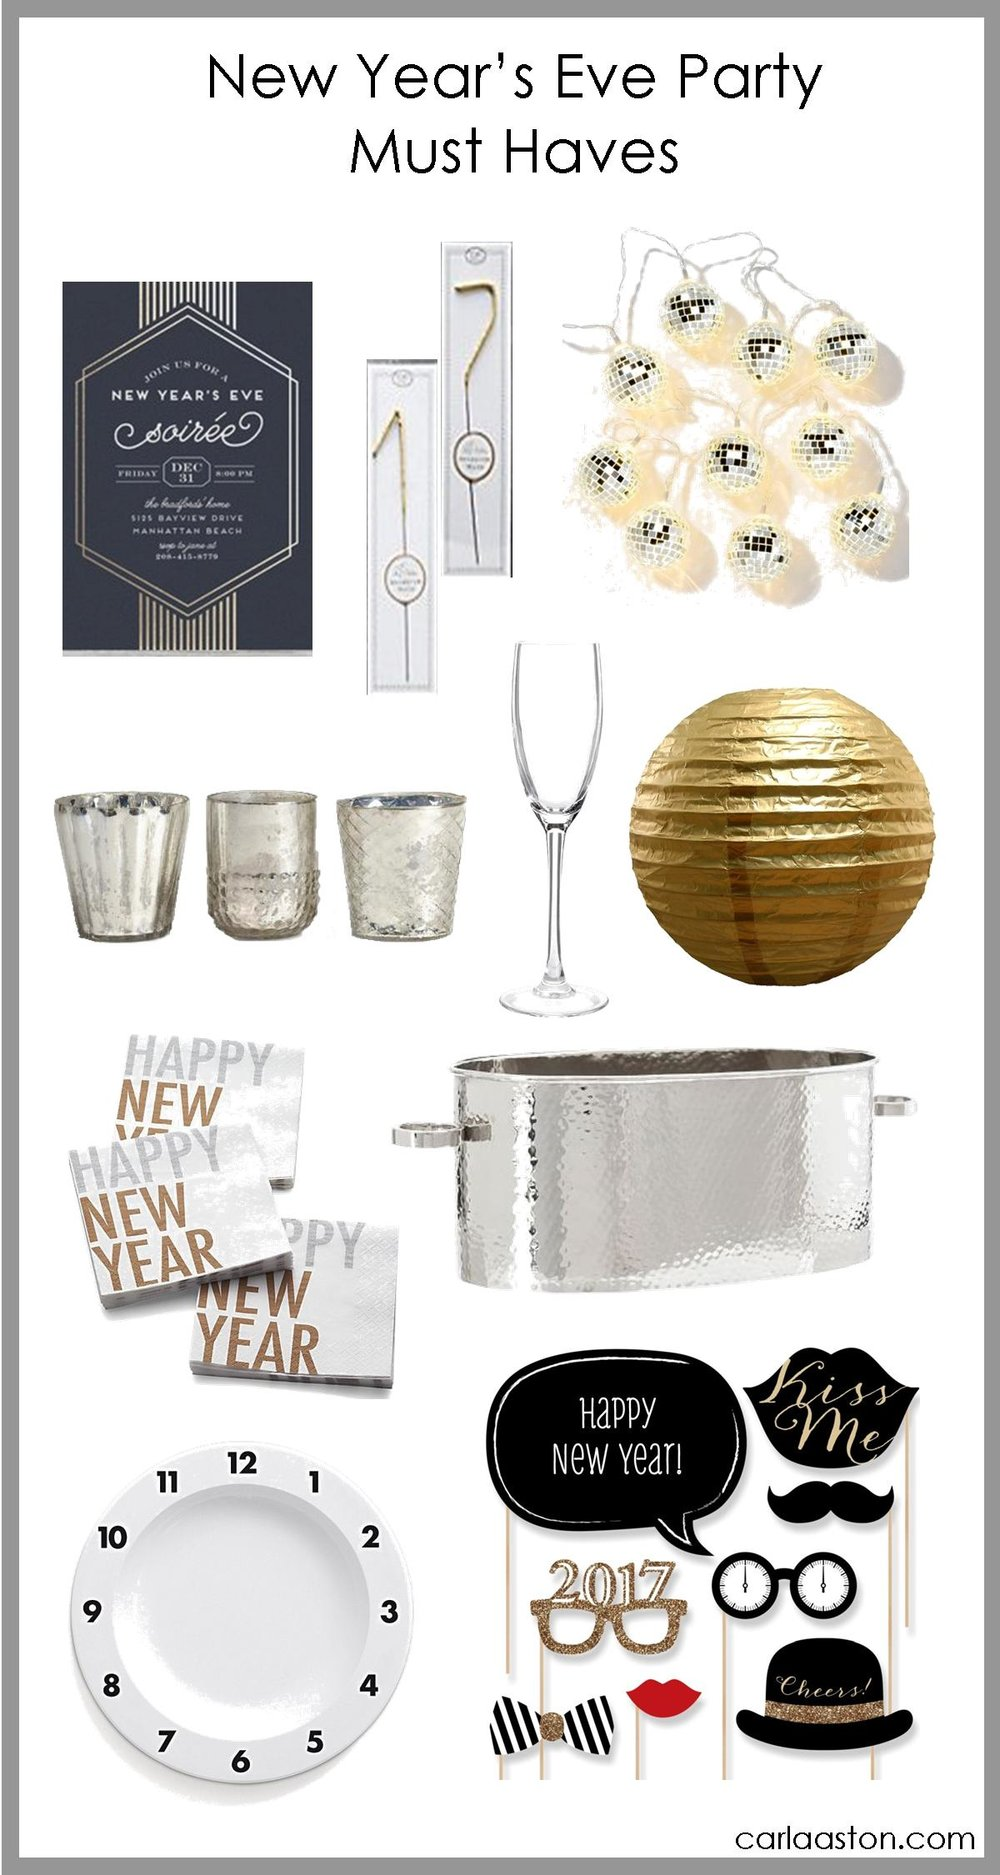 New Year's Eve Party Must Haves